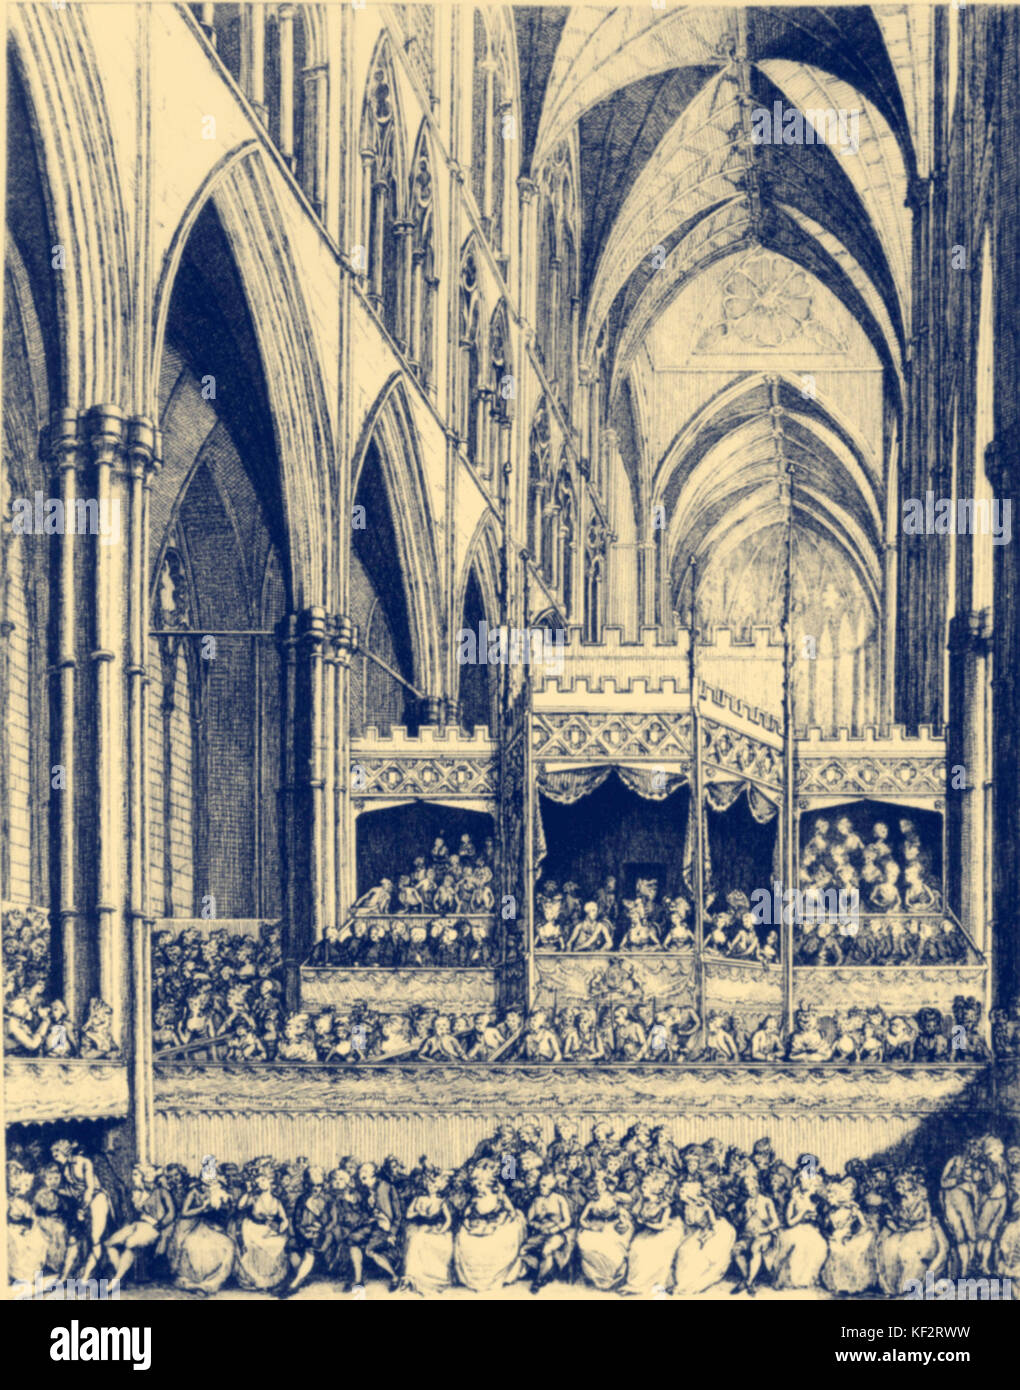 Handel's commemoration  -audience at Westminster Abbey in 1784. German-English composer, 1685-1759. - Stock Image